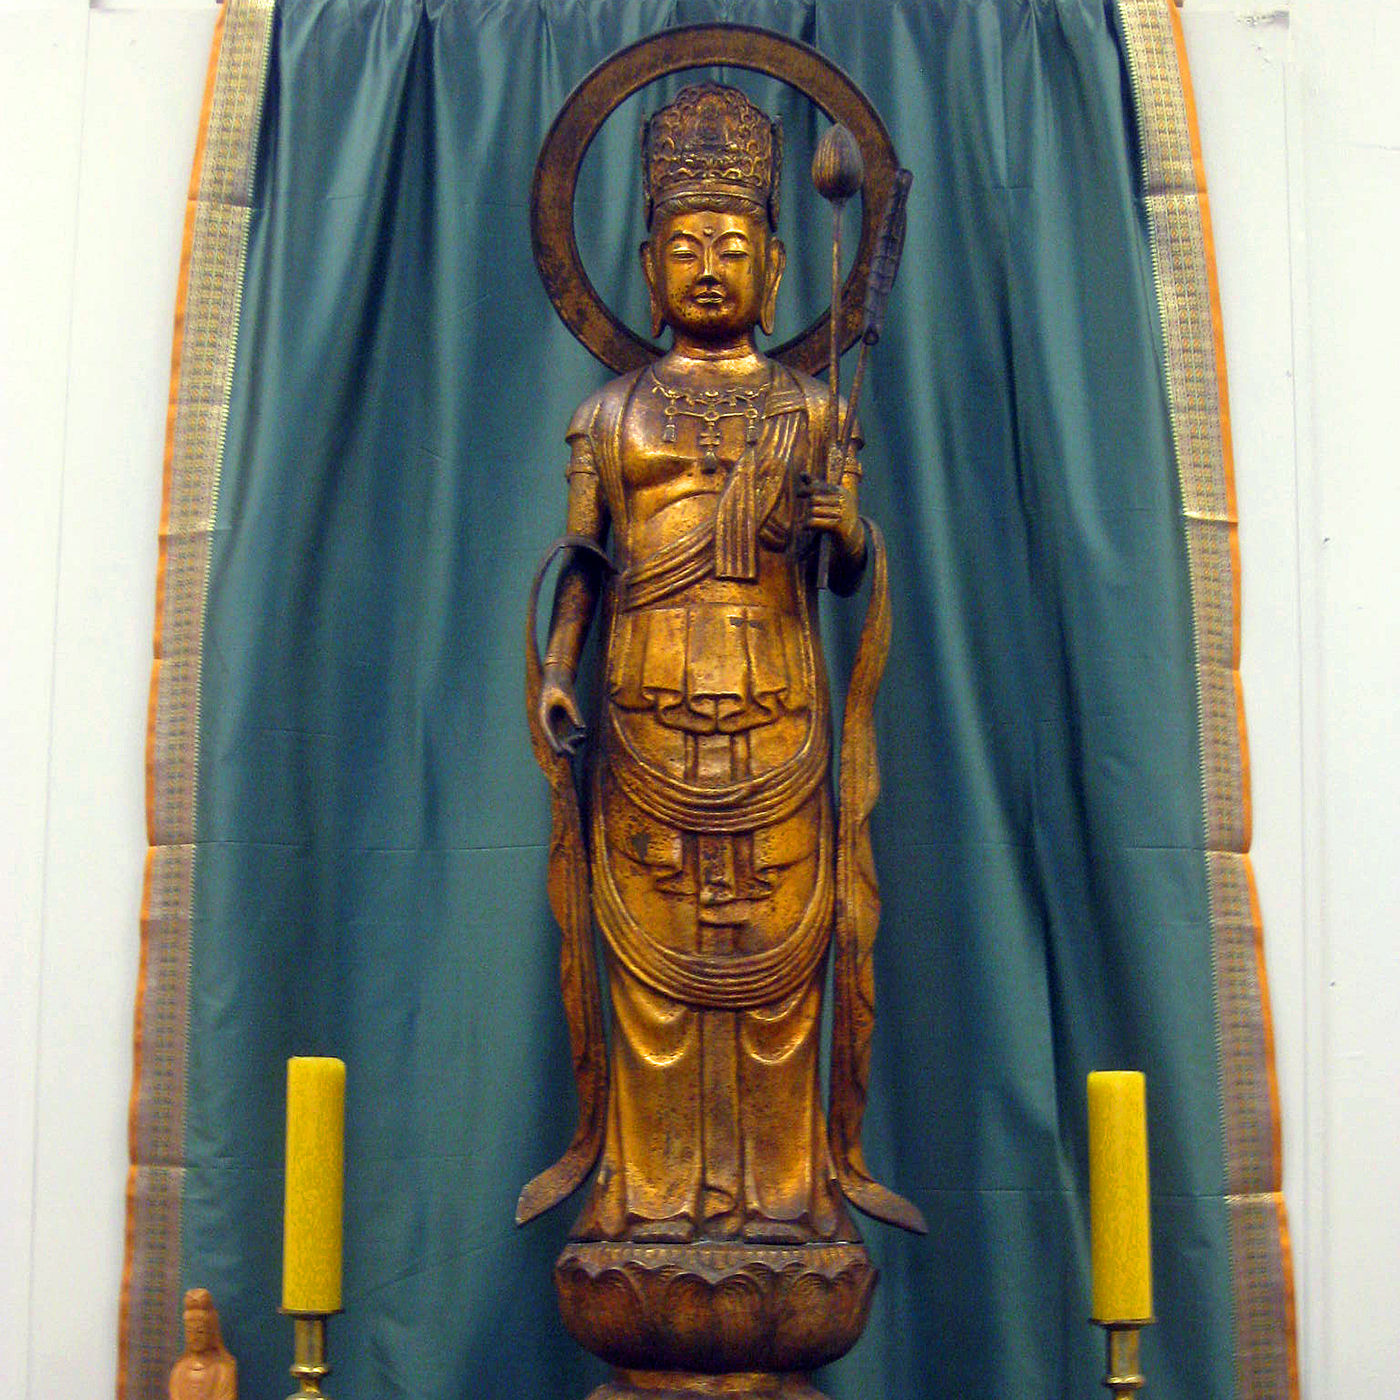 Auckland Zen Centre: Talks on the Precepts and Buddhist Ethics